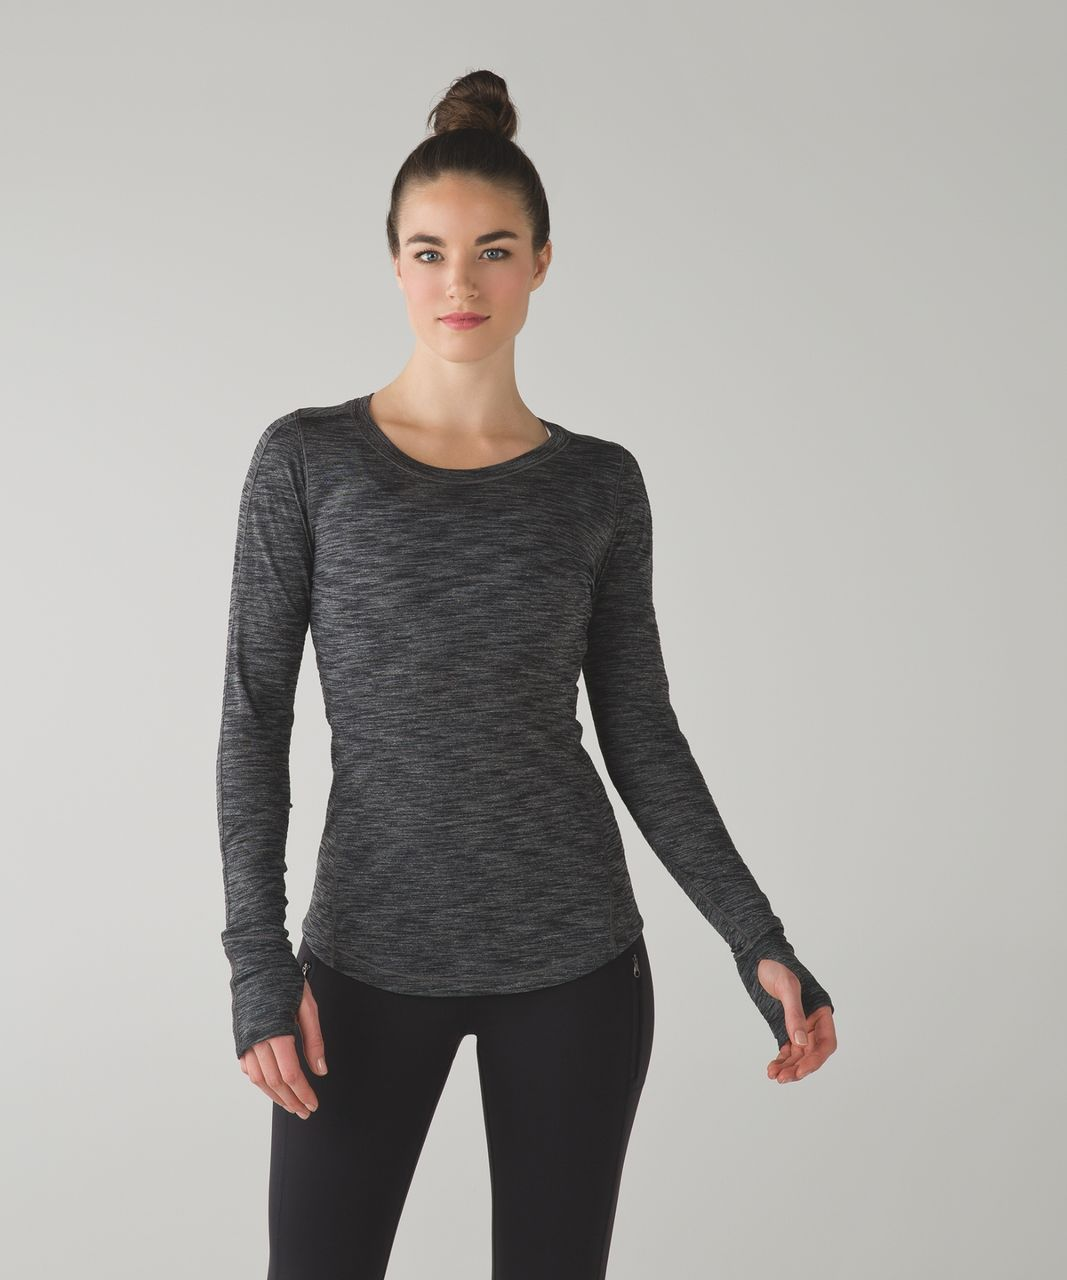 Lululemon 5 Mile Long Sleeve - Heathered Black